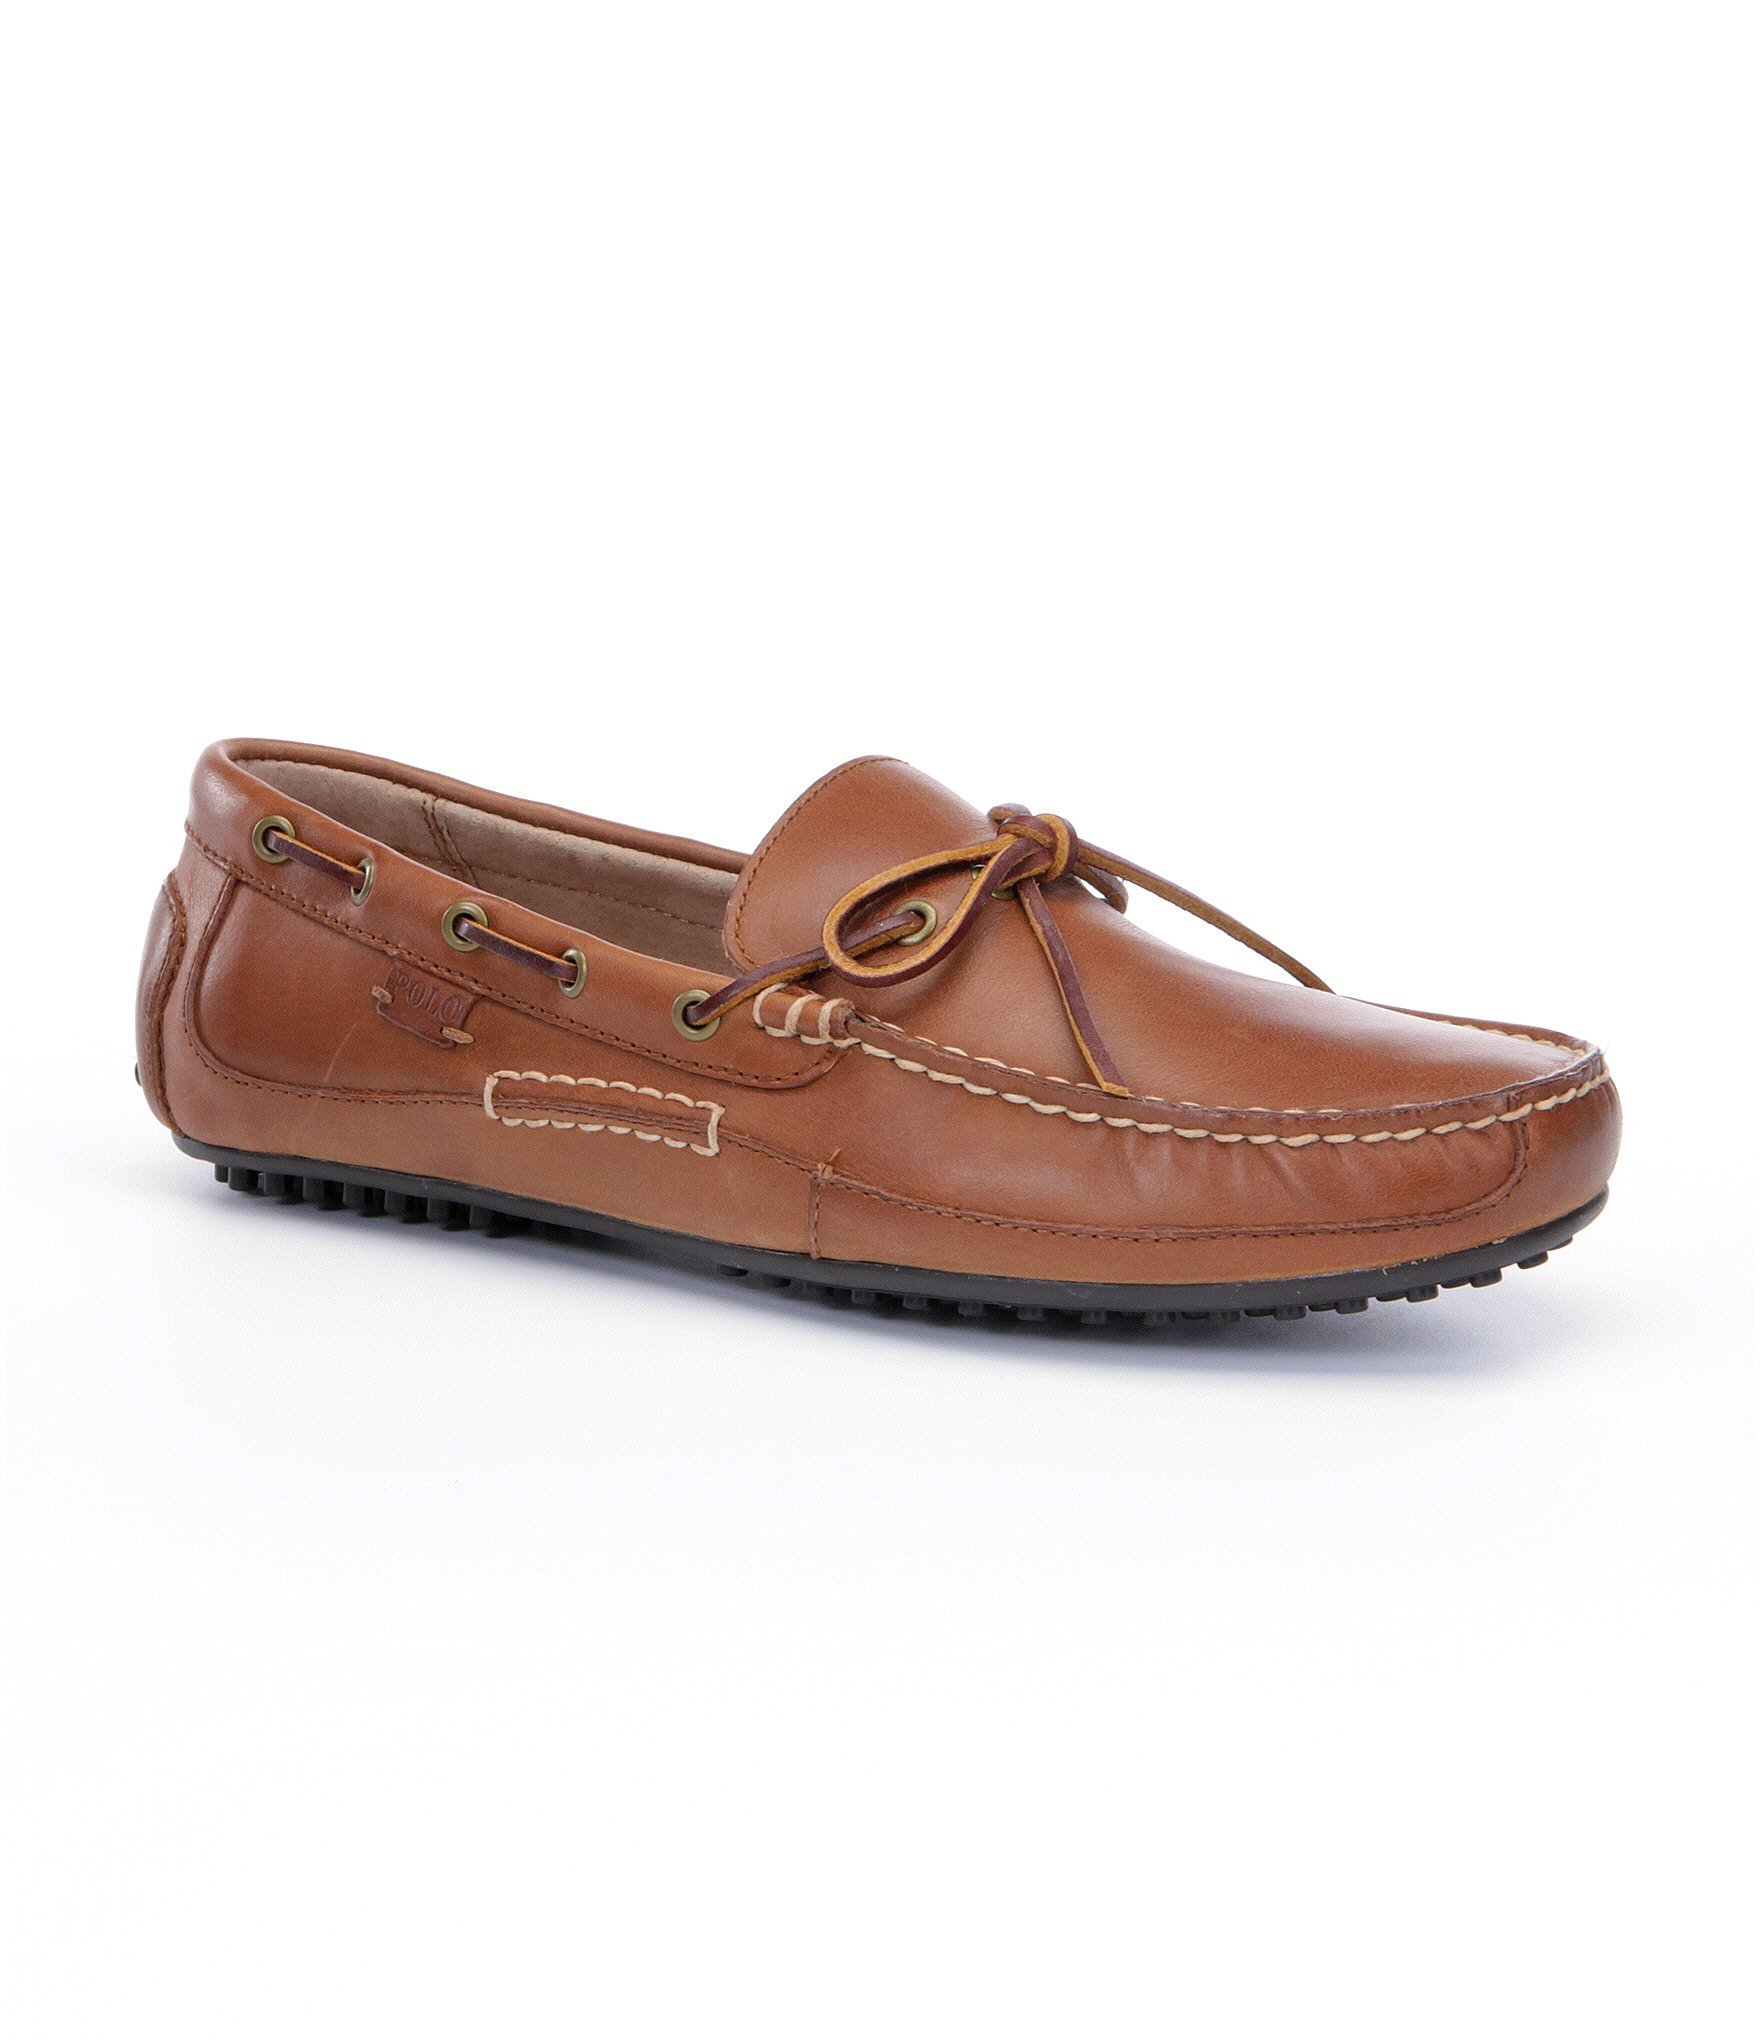 Polo Ralph Lauren Womens Boat Shoes